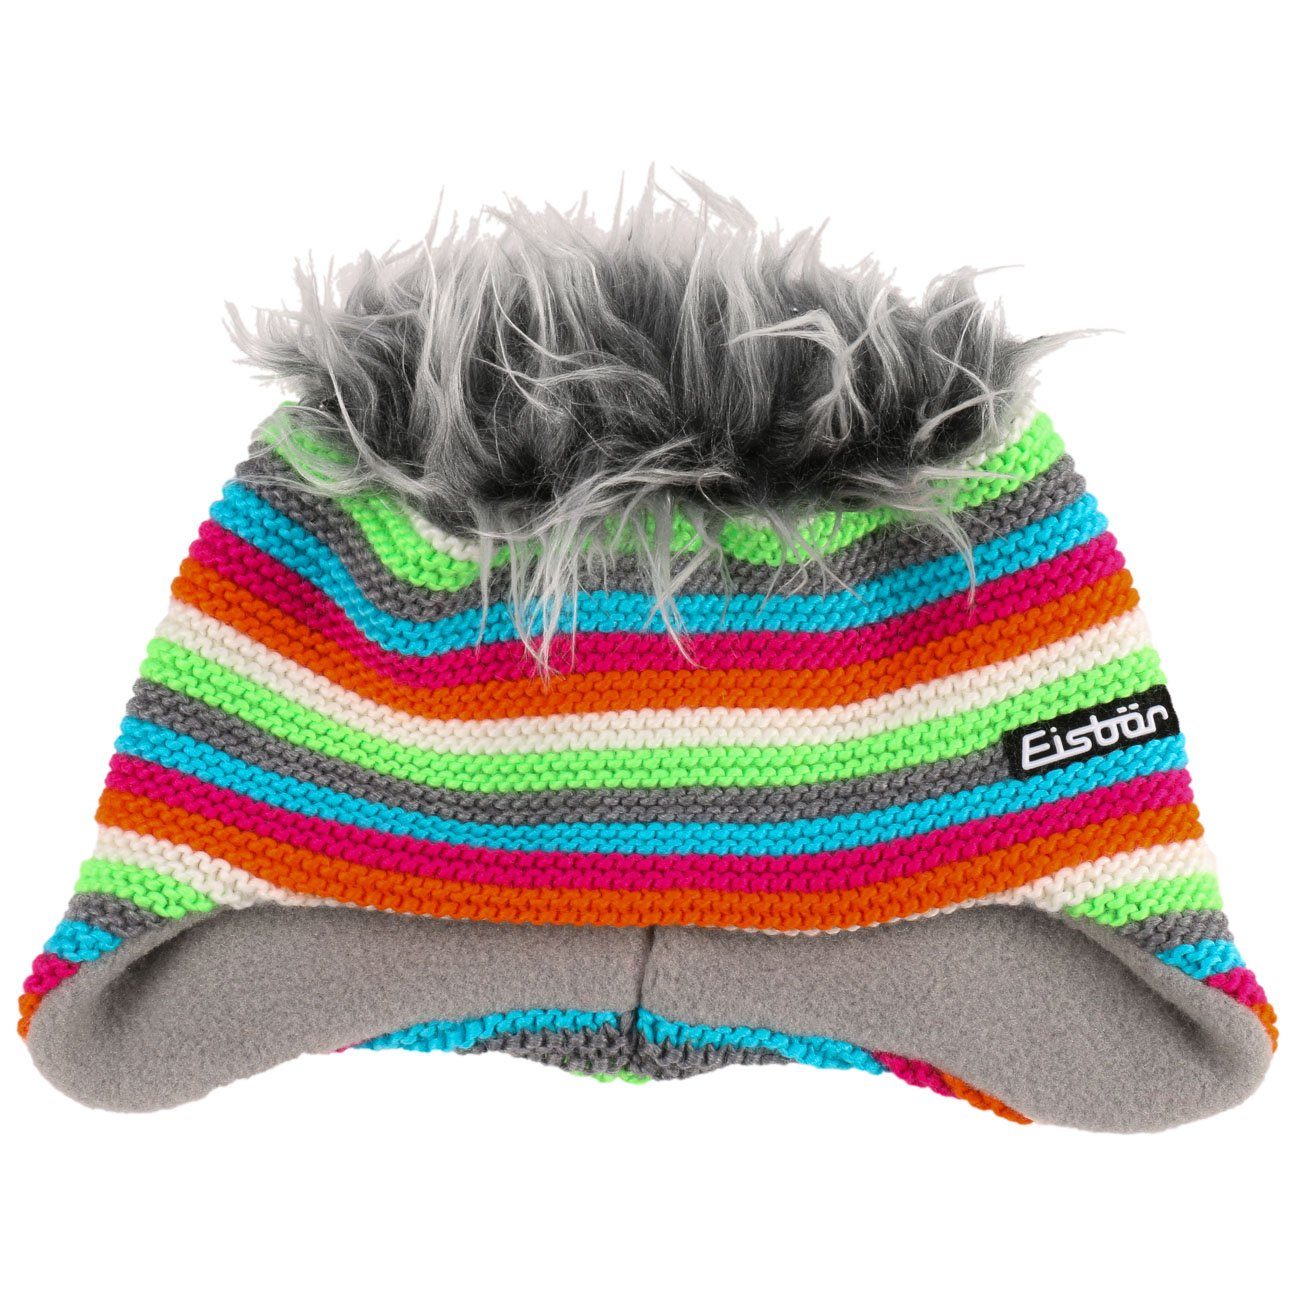 dadf5cf0e7d Eisbär Funky Cocker Knit Hat wool beanie knit beanie (One Size - white)   Amazon.co.uk  Clothing